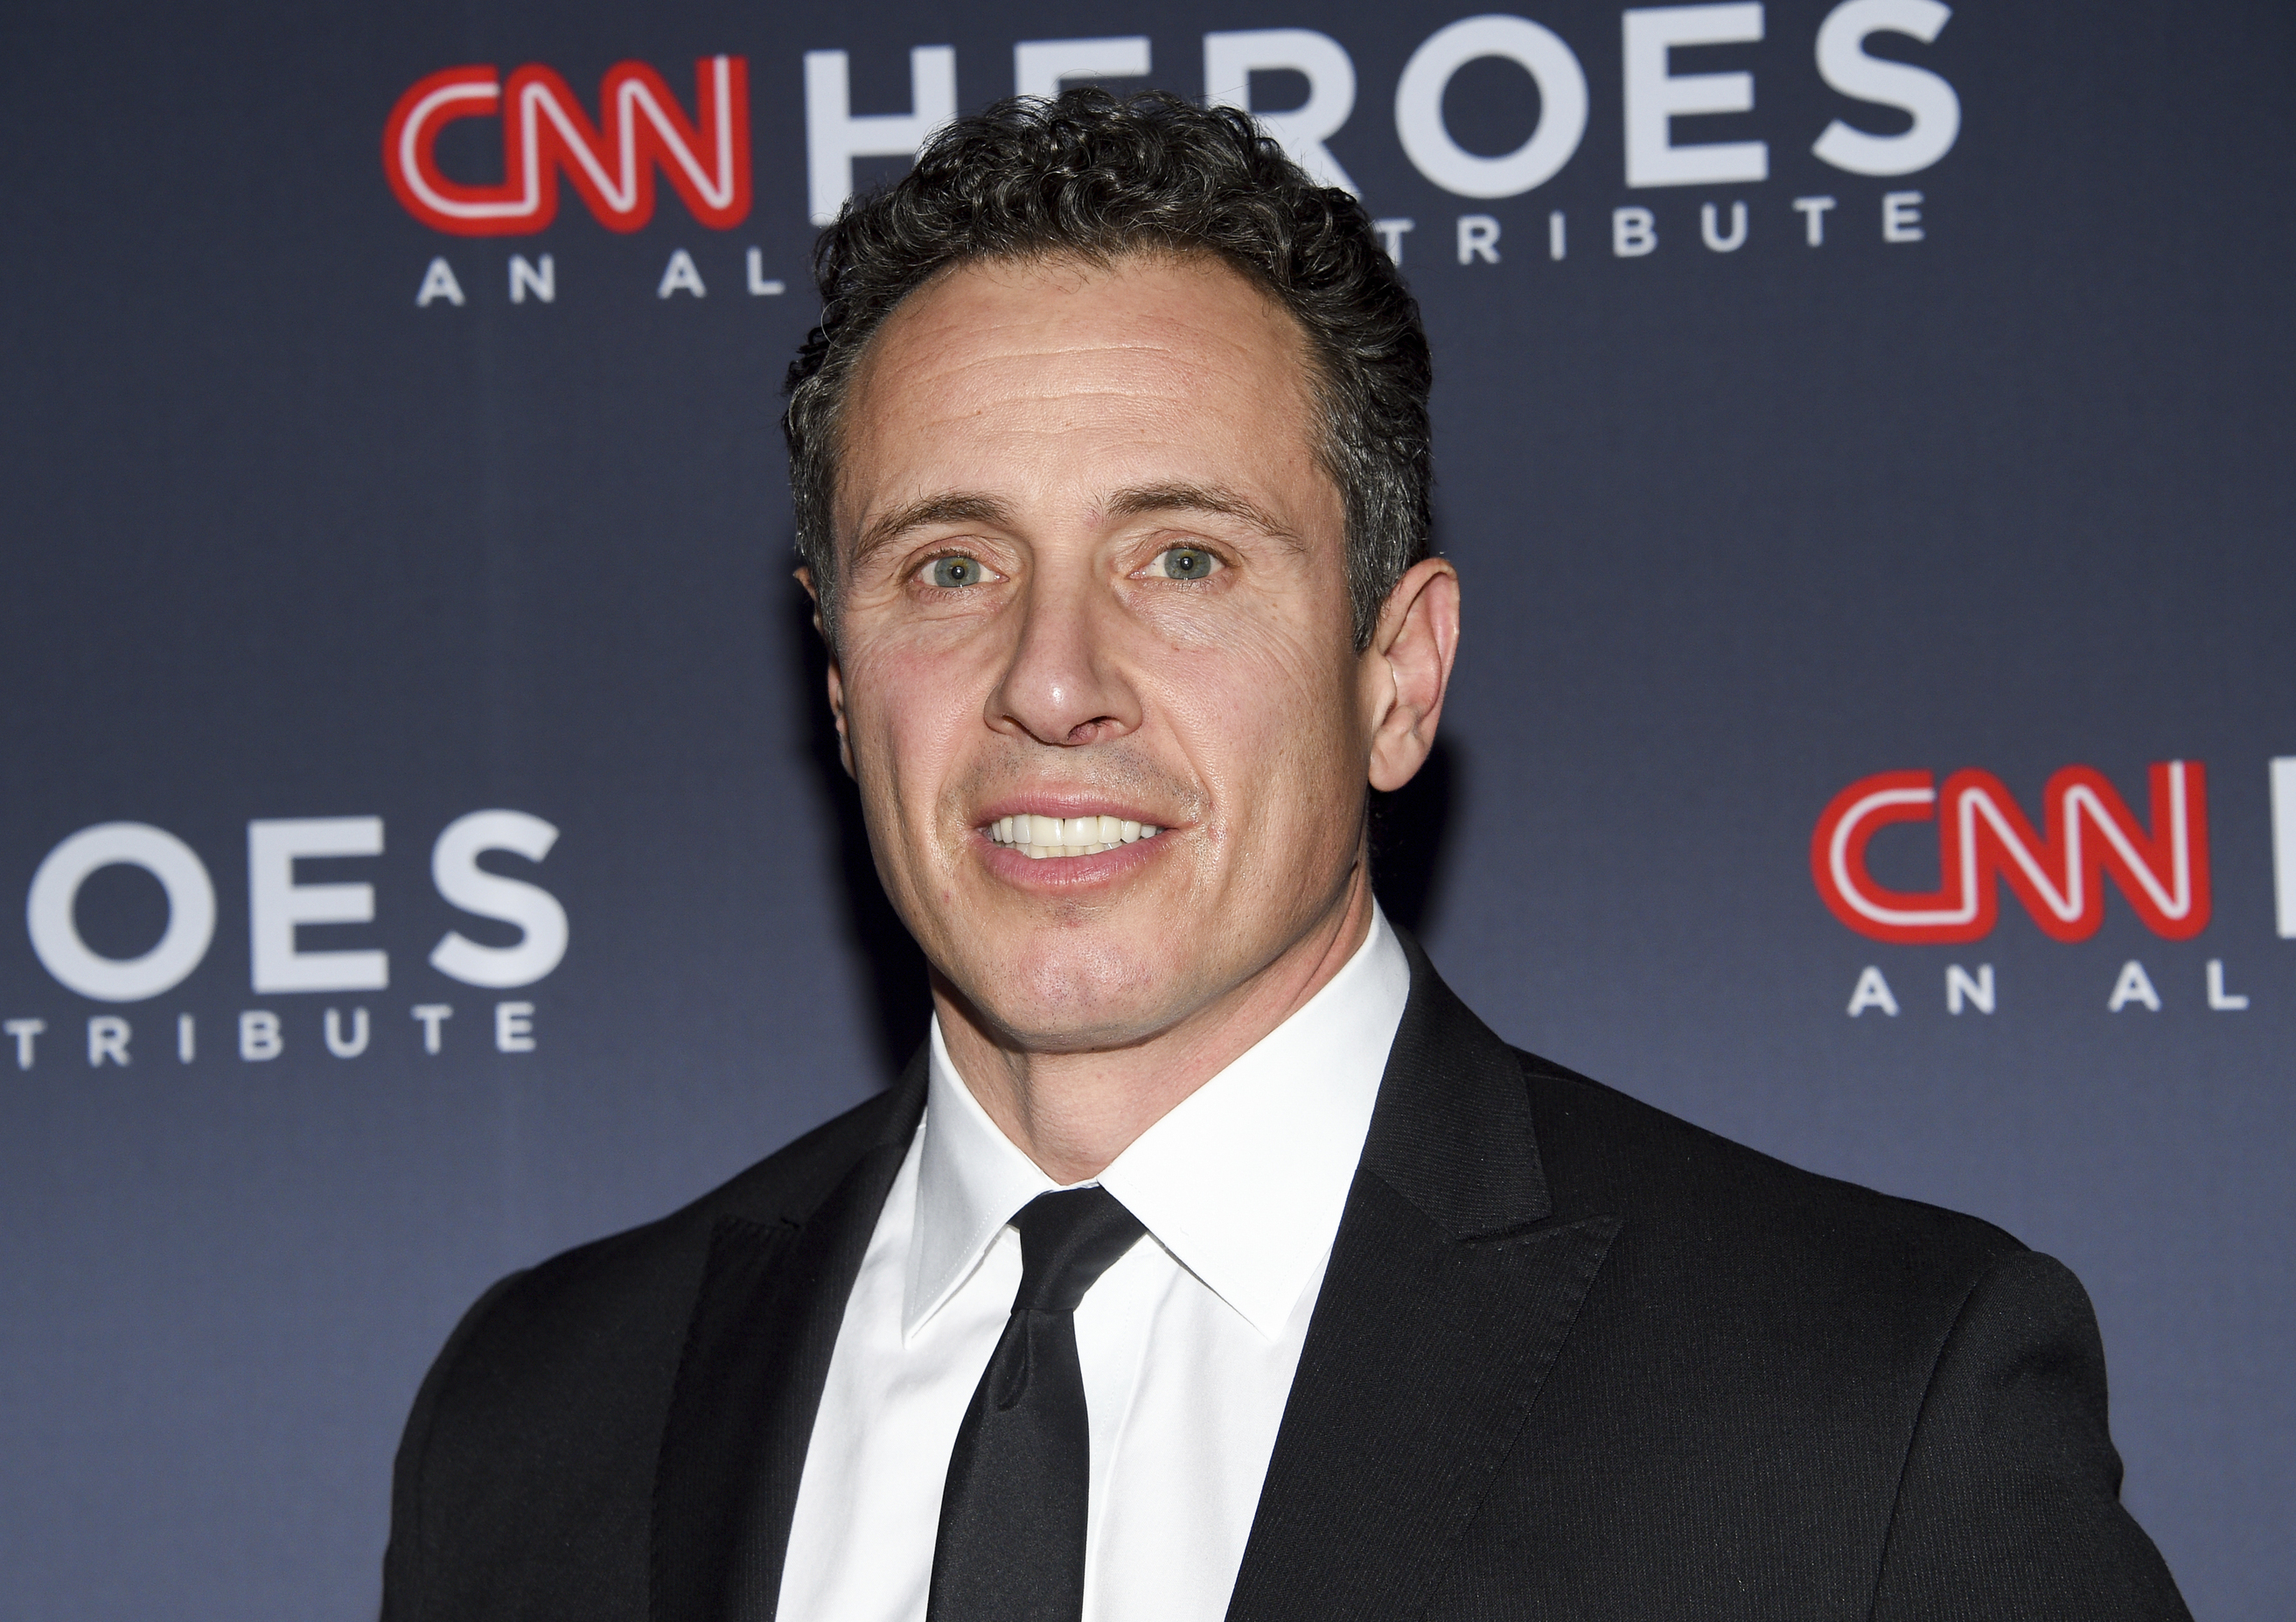 Chris Cuomo attacks Trump for not aging as fast as past presidents: 'Care more, sleep less'